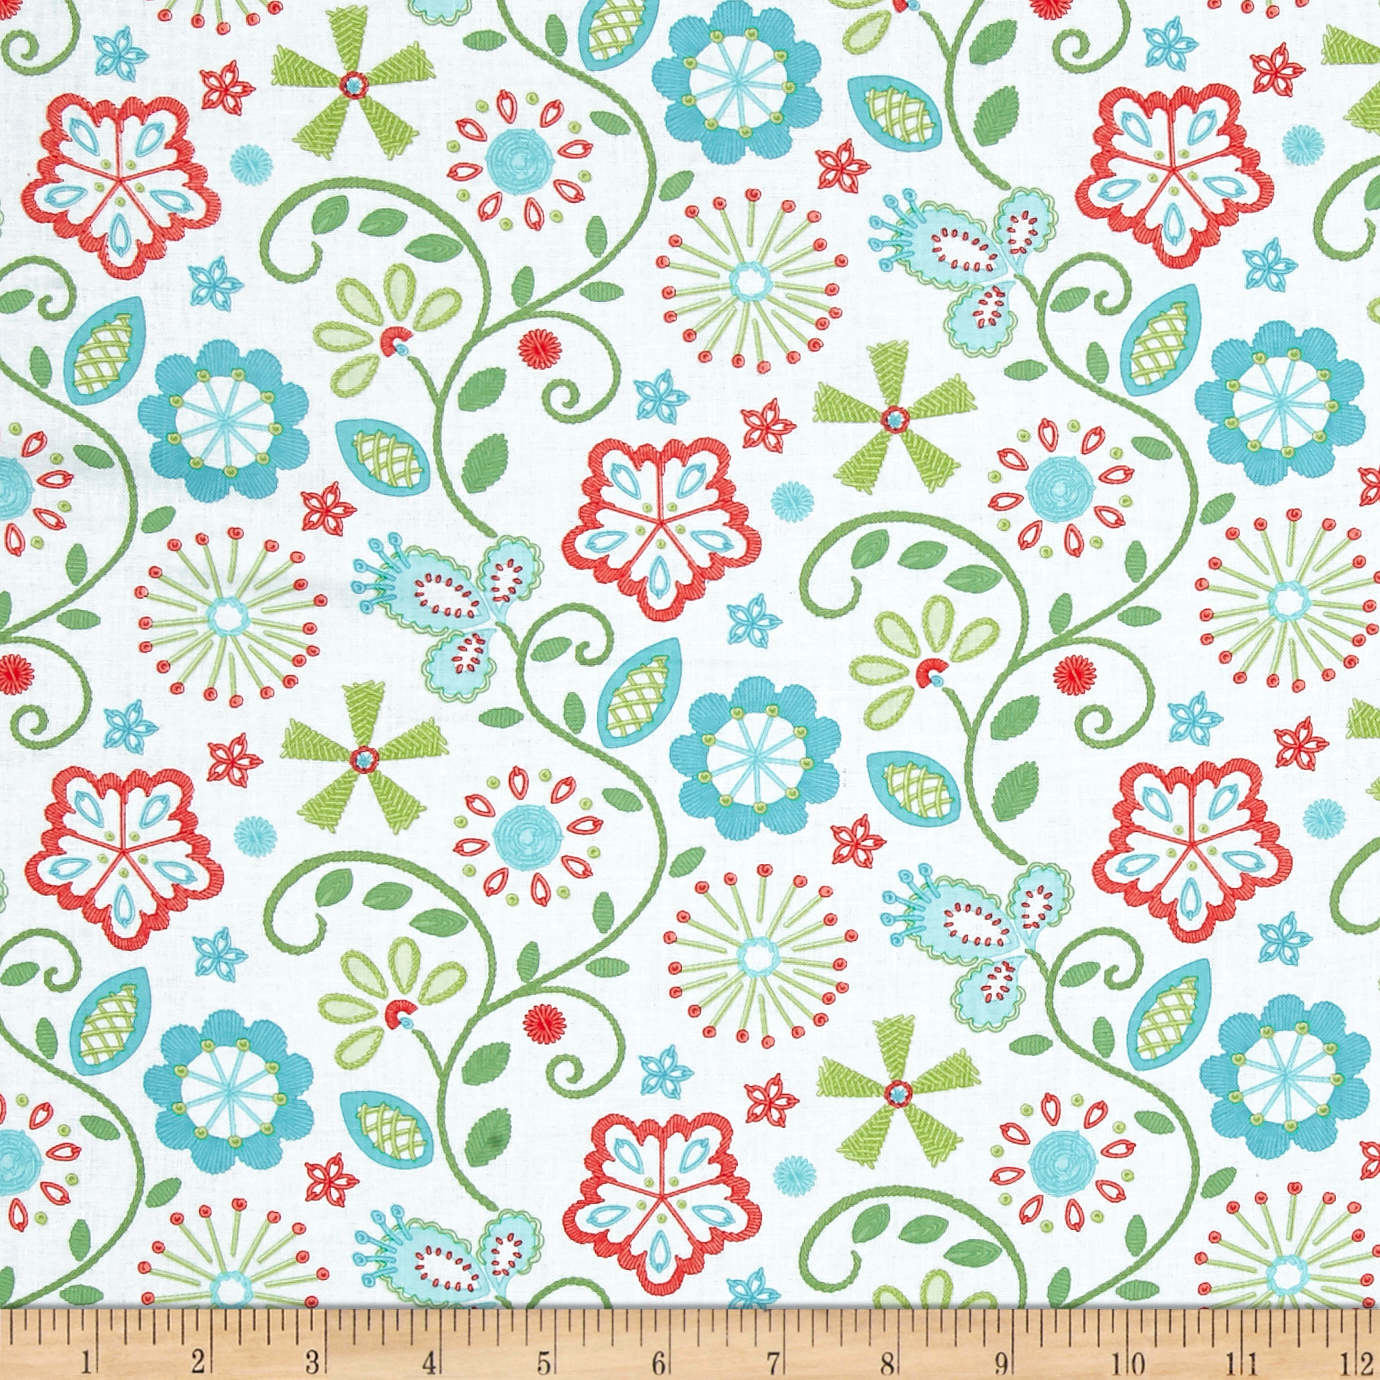 Sewing Room Embroidery White Fabric